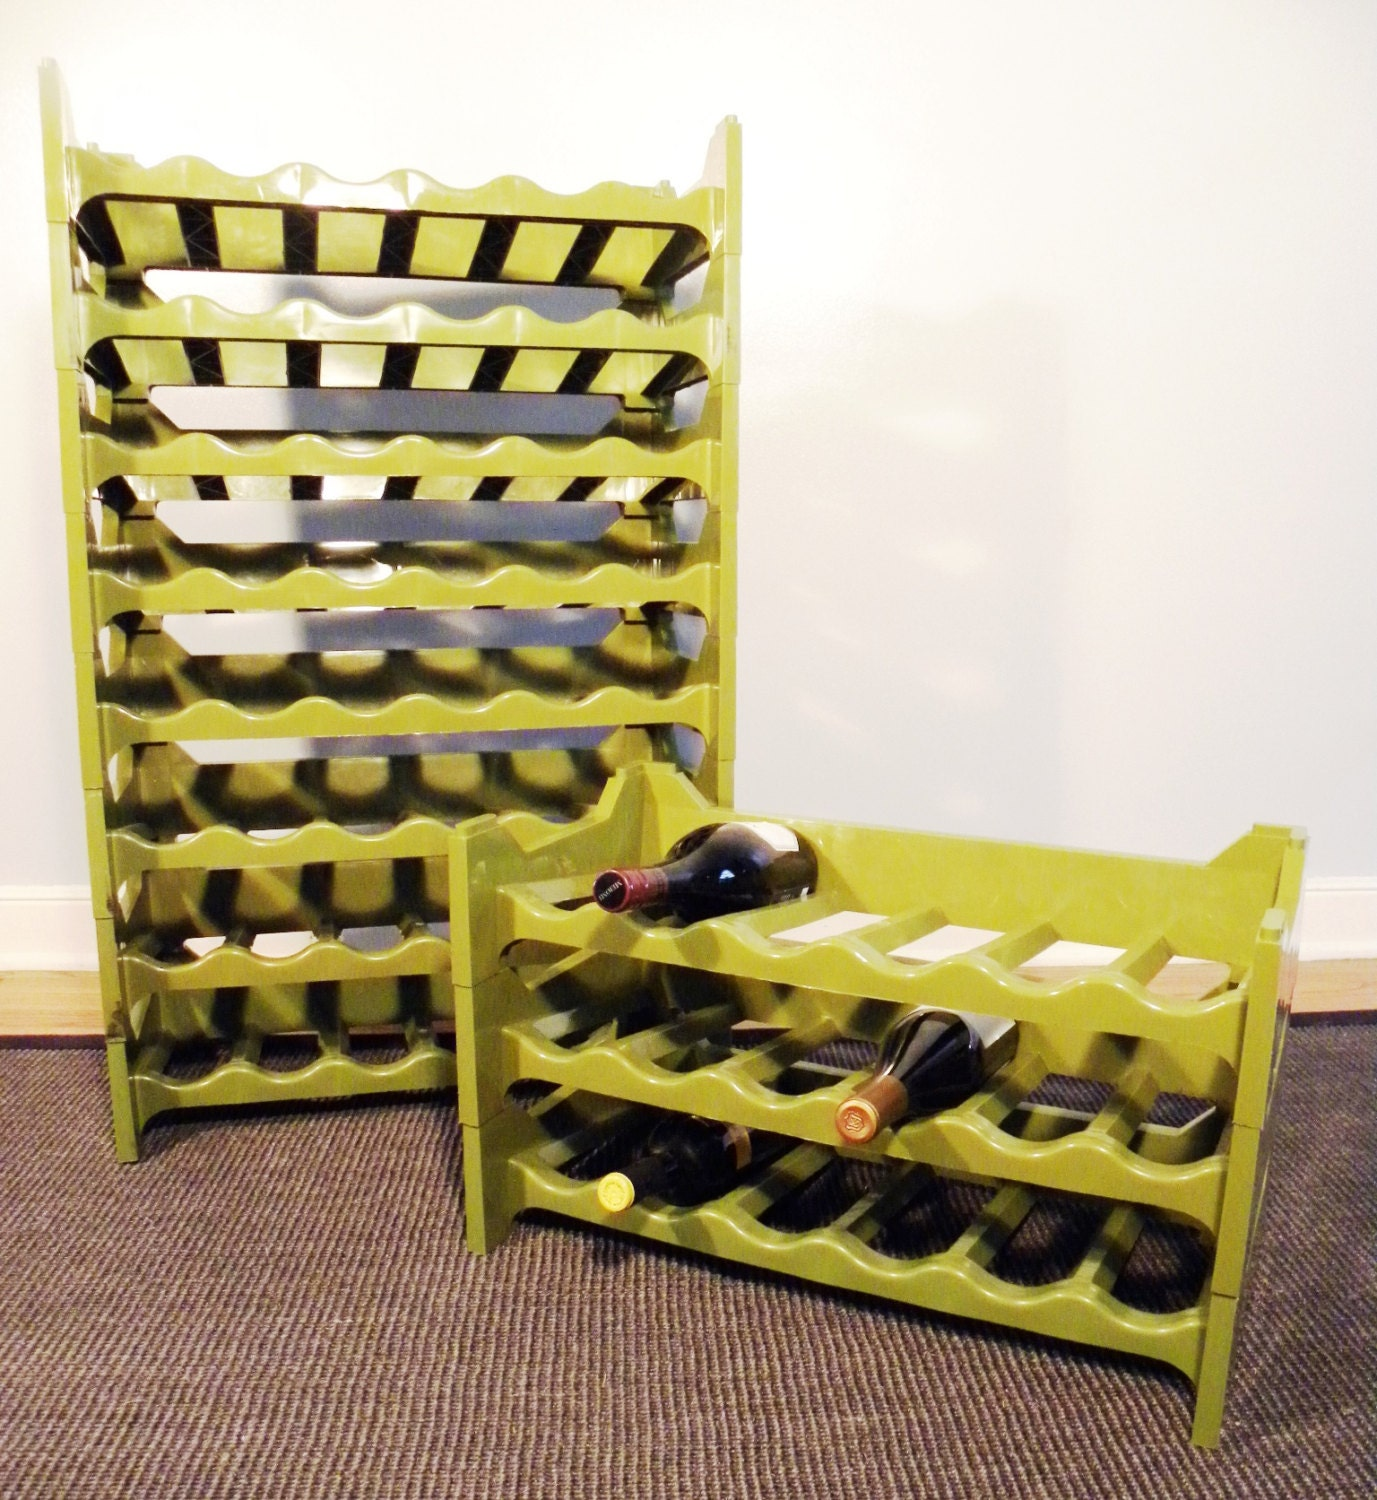 funky wine modular wine racks sold as a by